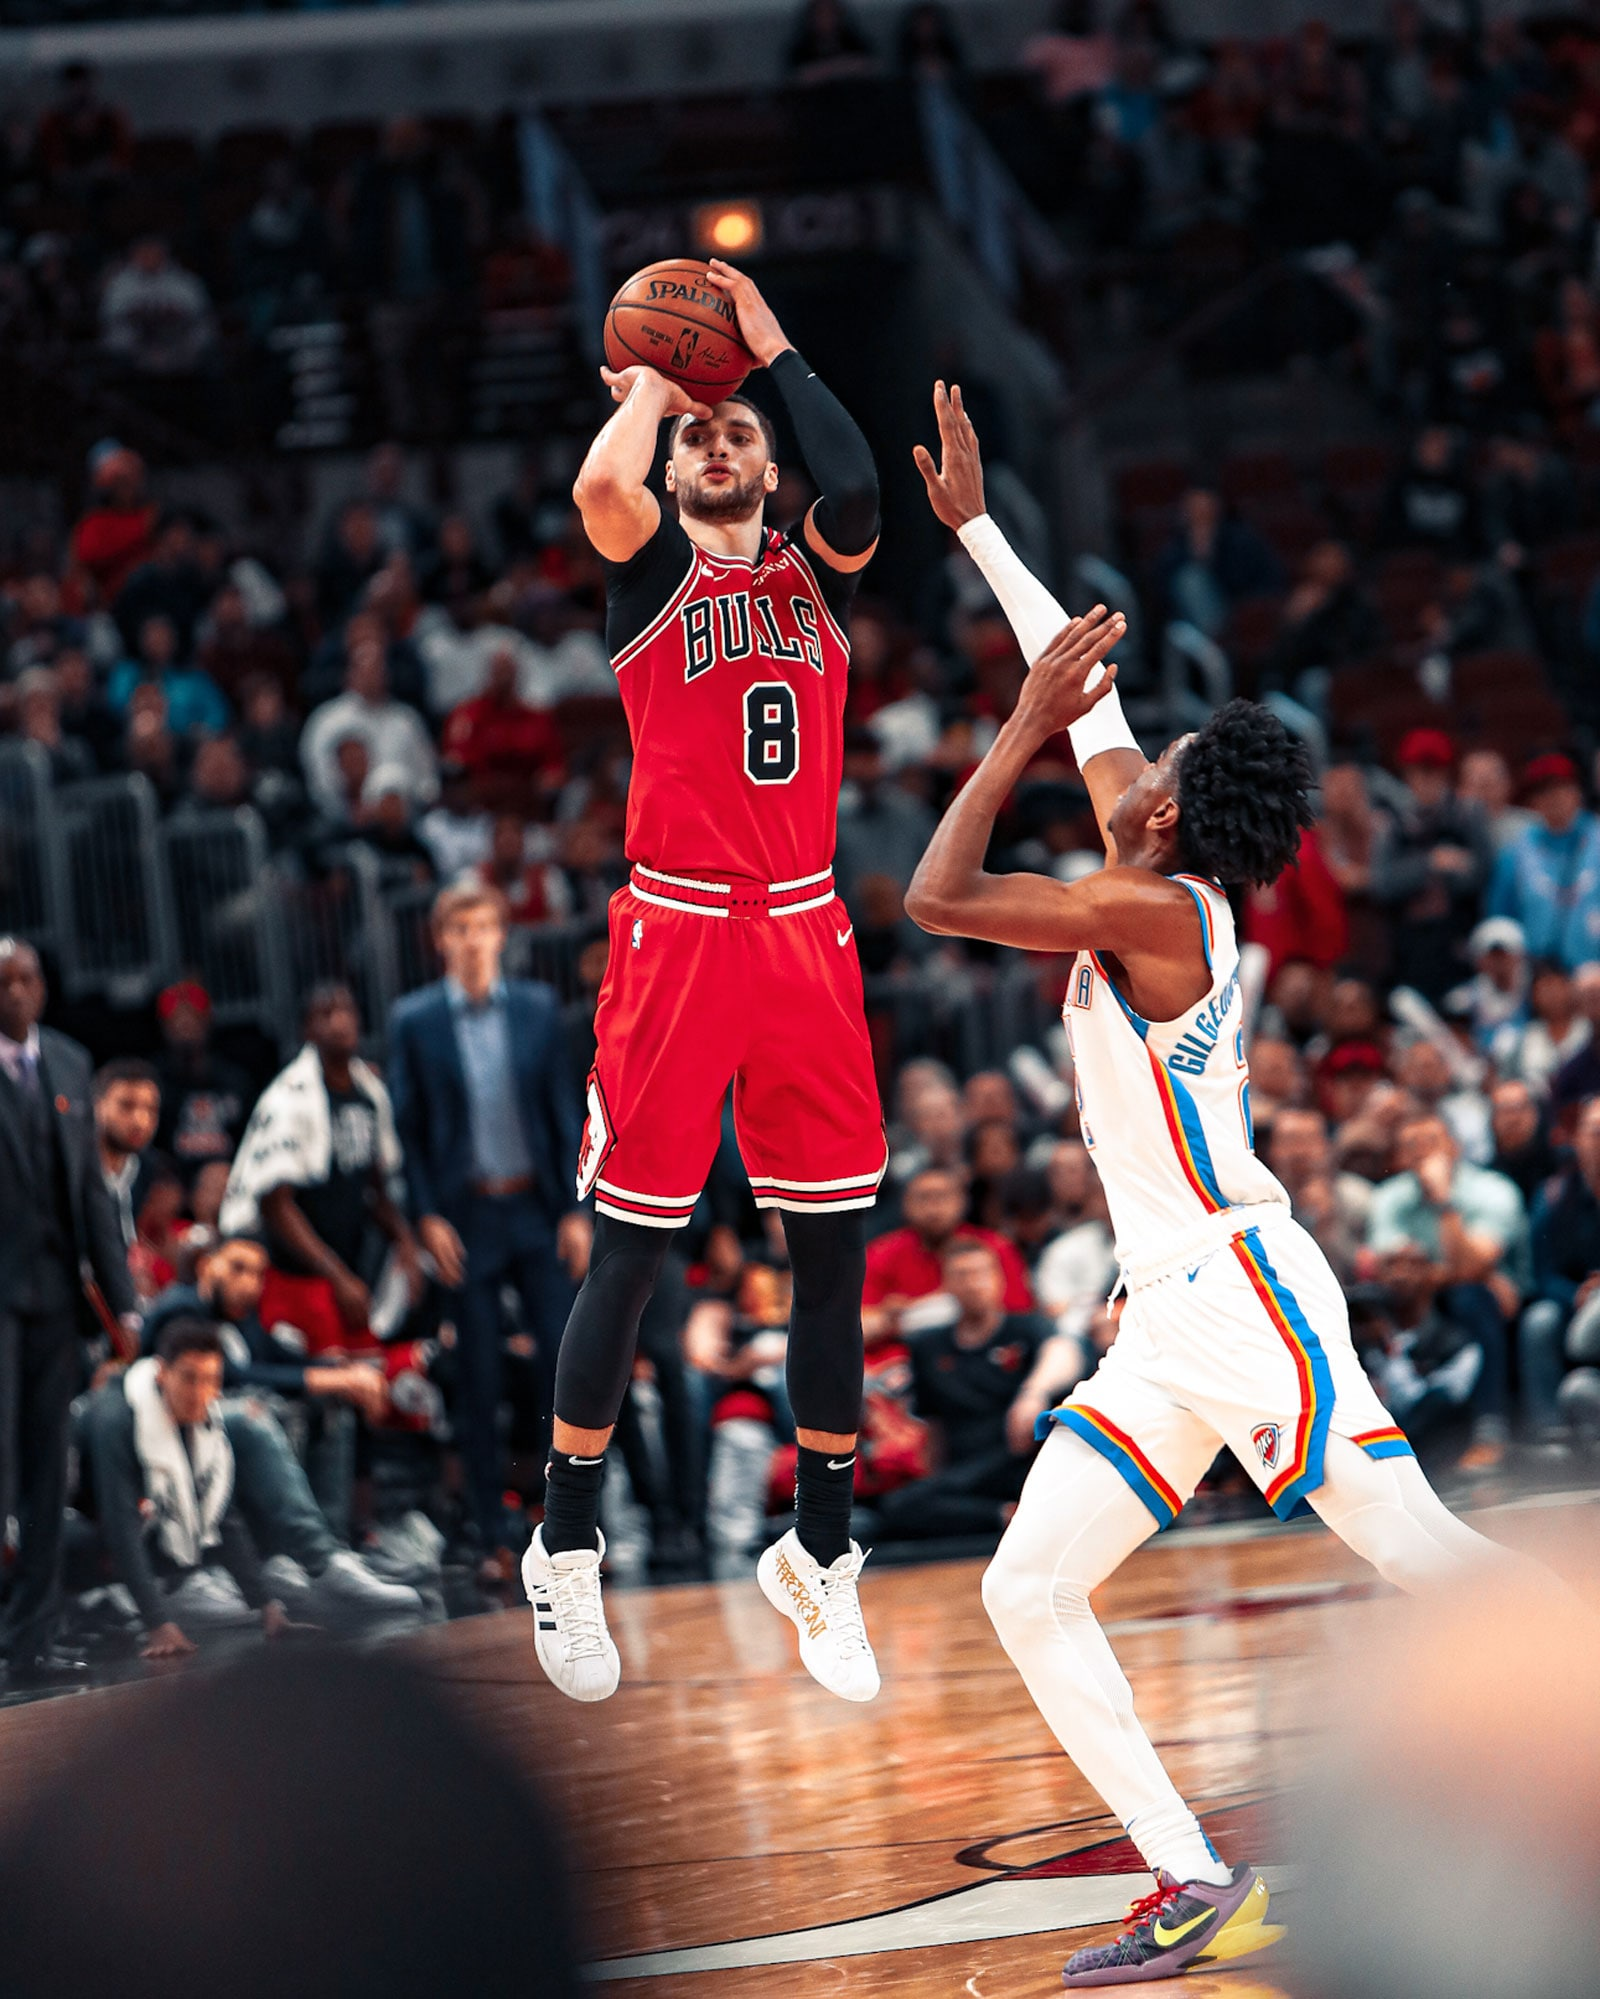 Zach LaVine shoots against the Oklahoma City Thunder, finishing with 41 points on Tuesday night.